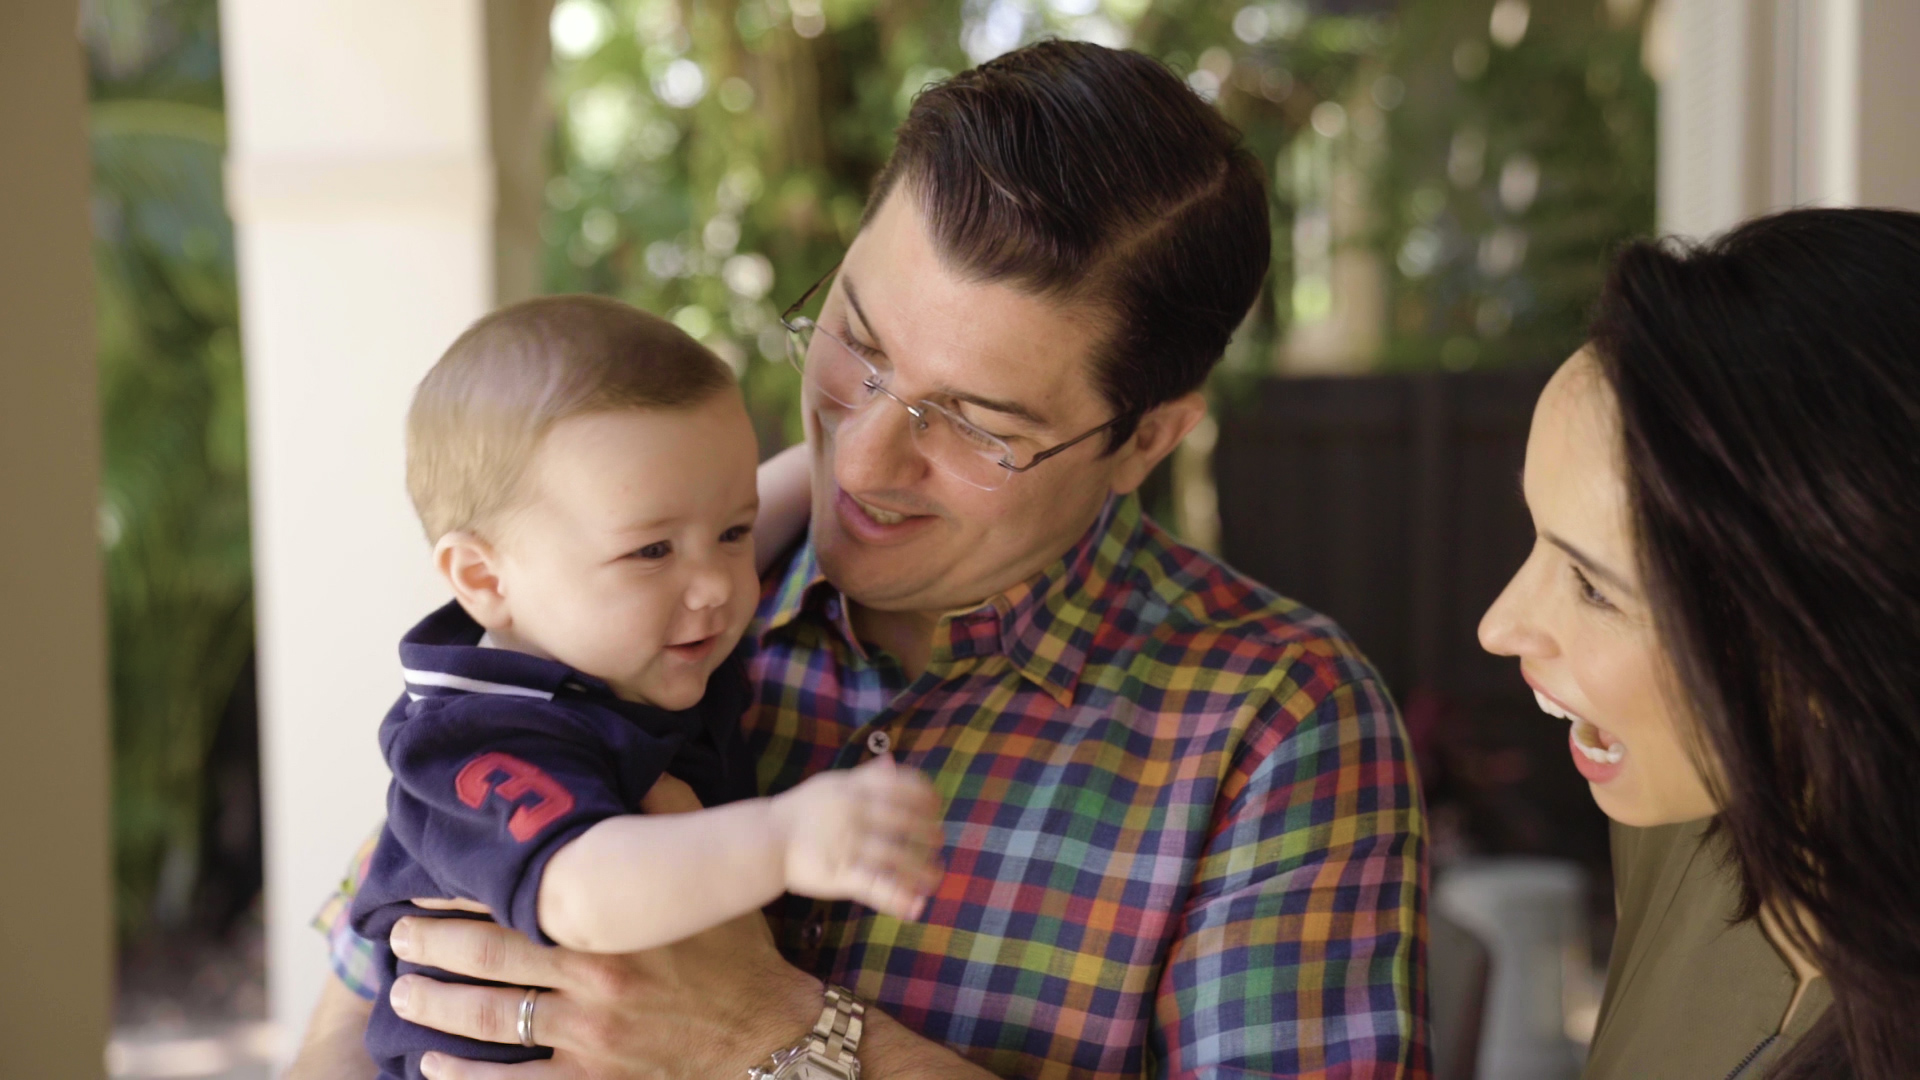 Latino man in glasses and multi colored shirt holding a small infant boy in a blue shirt with a caucasian woman with long brown hair smiling, on a patio outside and sun shining, greenery in background